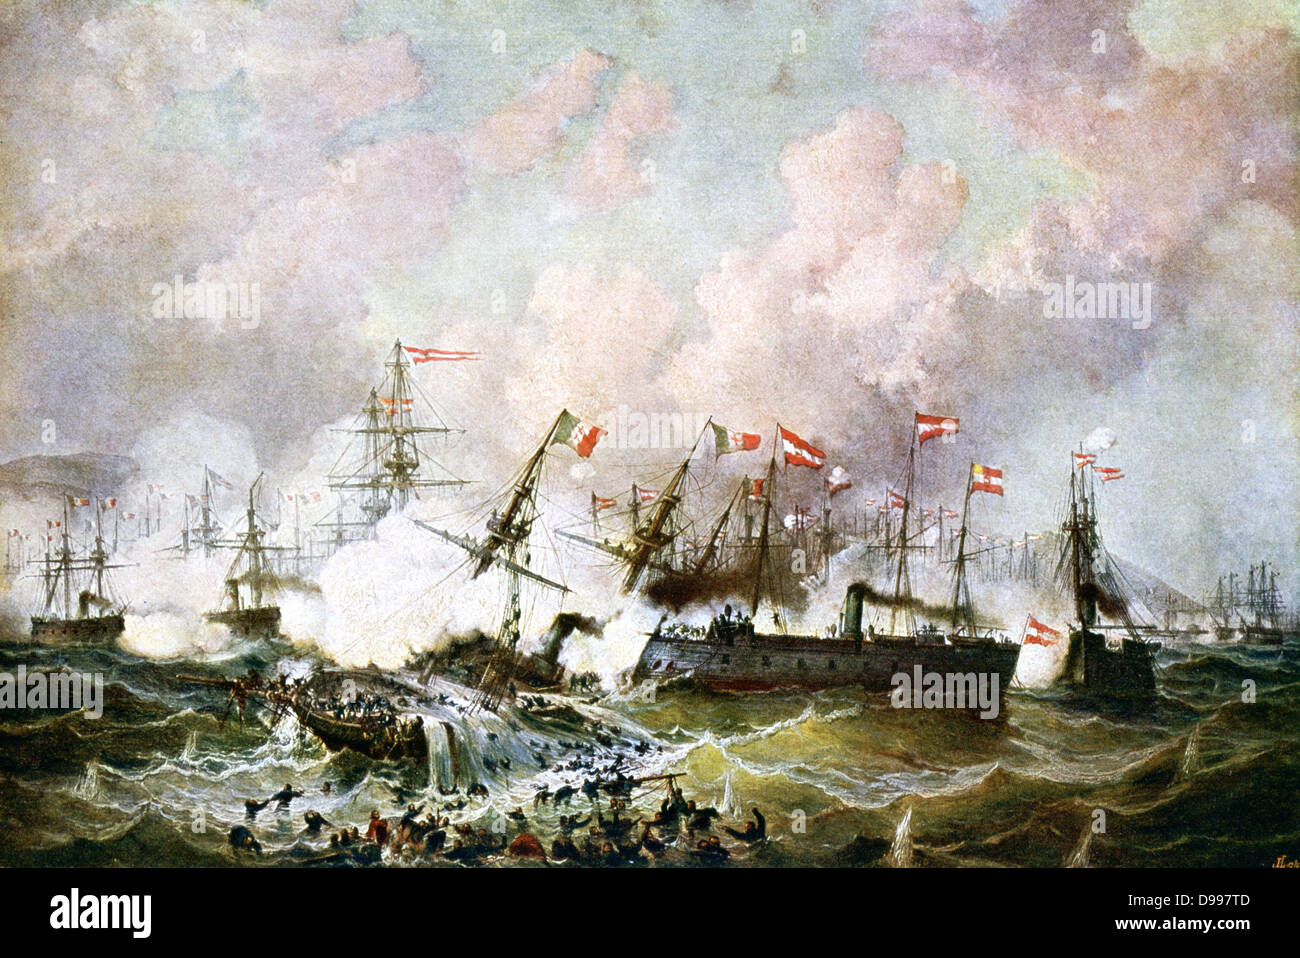 Battle of Lissa (Vis - modern Croatia) 20 July 1866, in the Adriatic between Austrian Empire and Italy; decisive - Stock Image